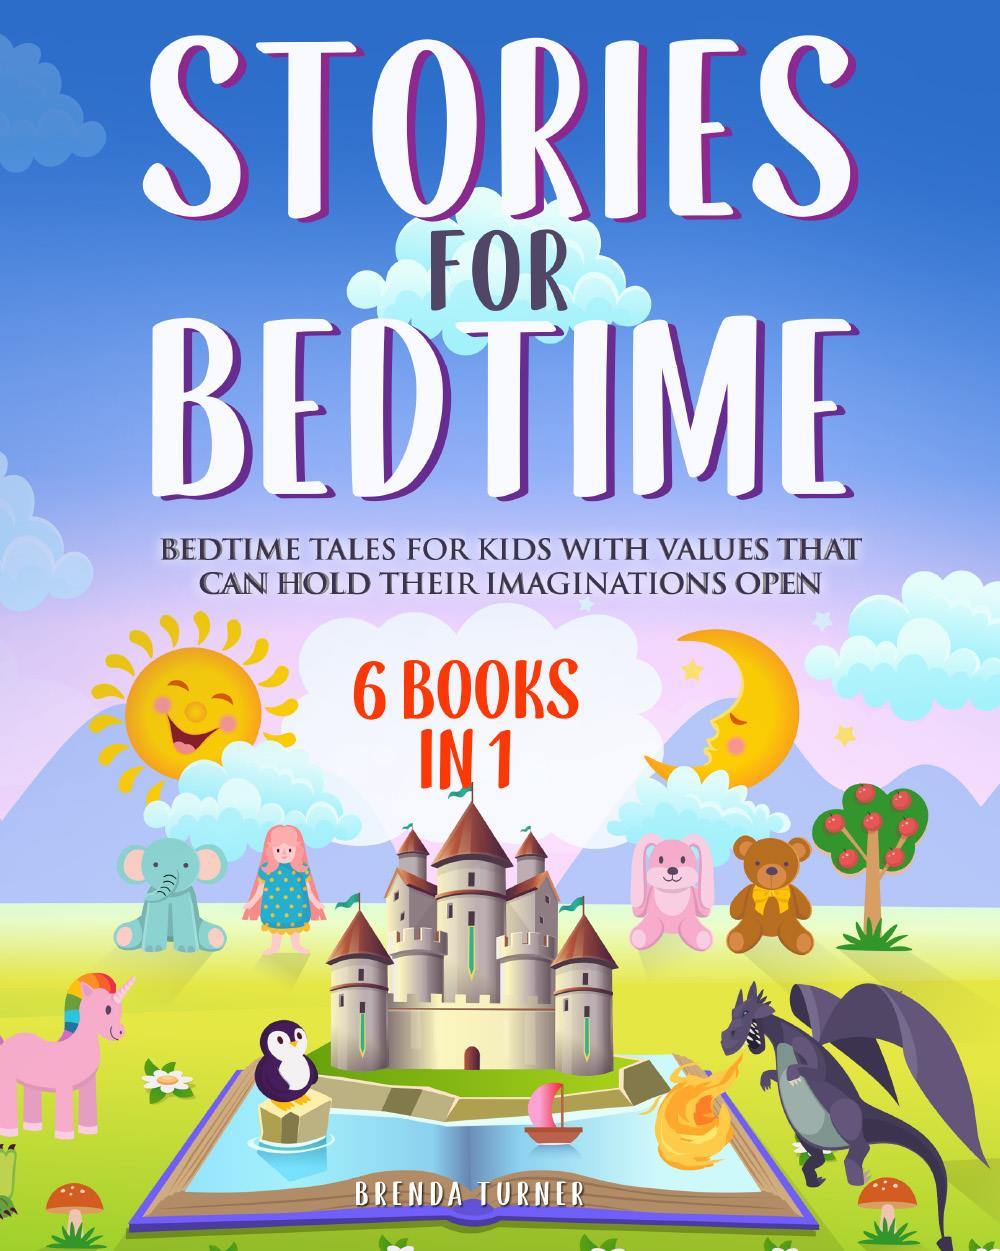 Stories for Bedtime (6 Books in 1). Bedtime tales for kids with values that can hold their imaginations open.